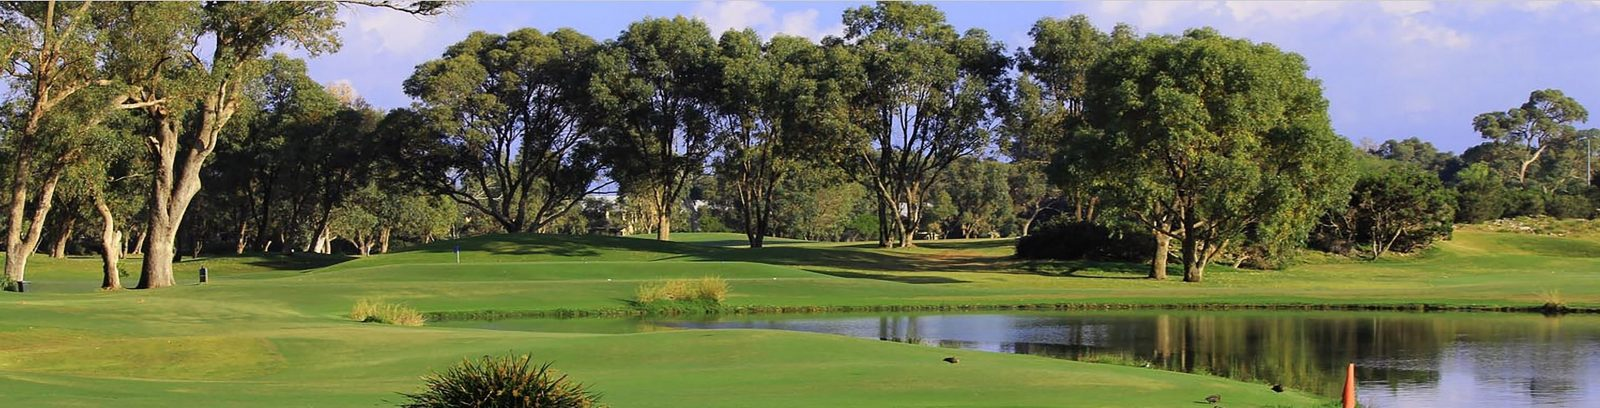 Meadow Springs Golf and Country Club, Meadow Springs, Western Australia